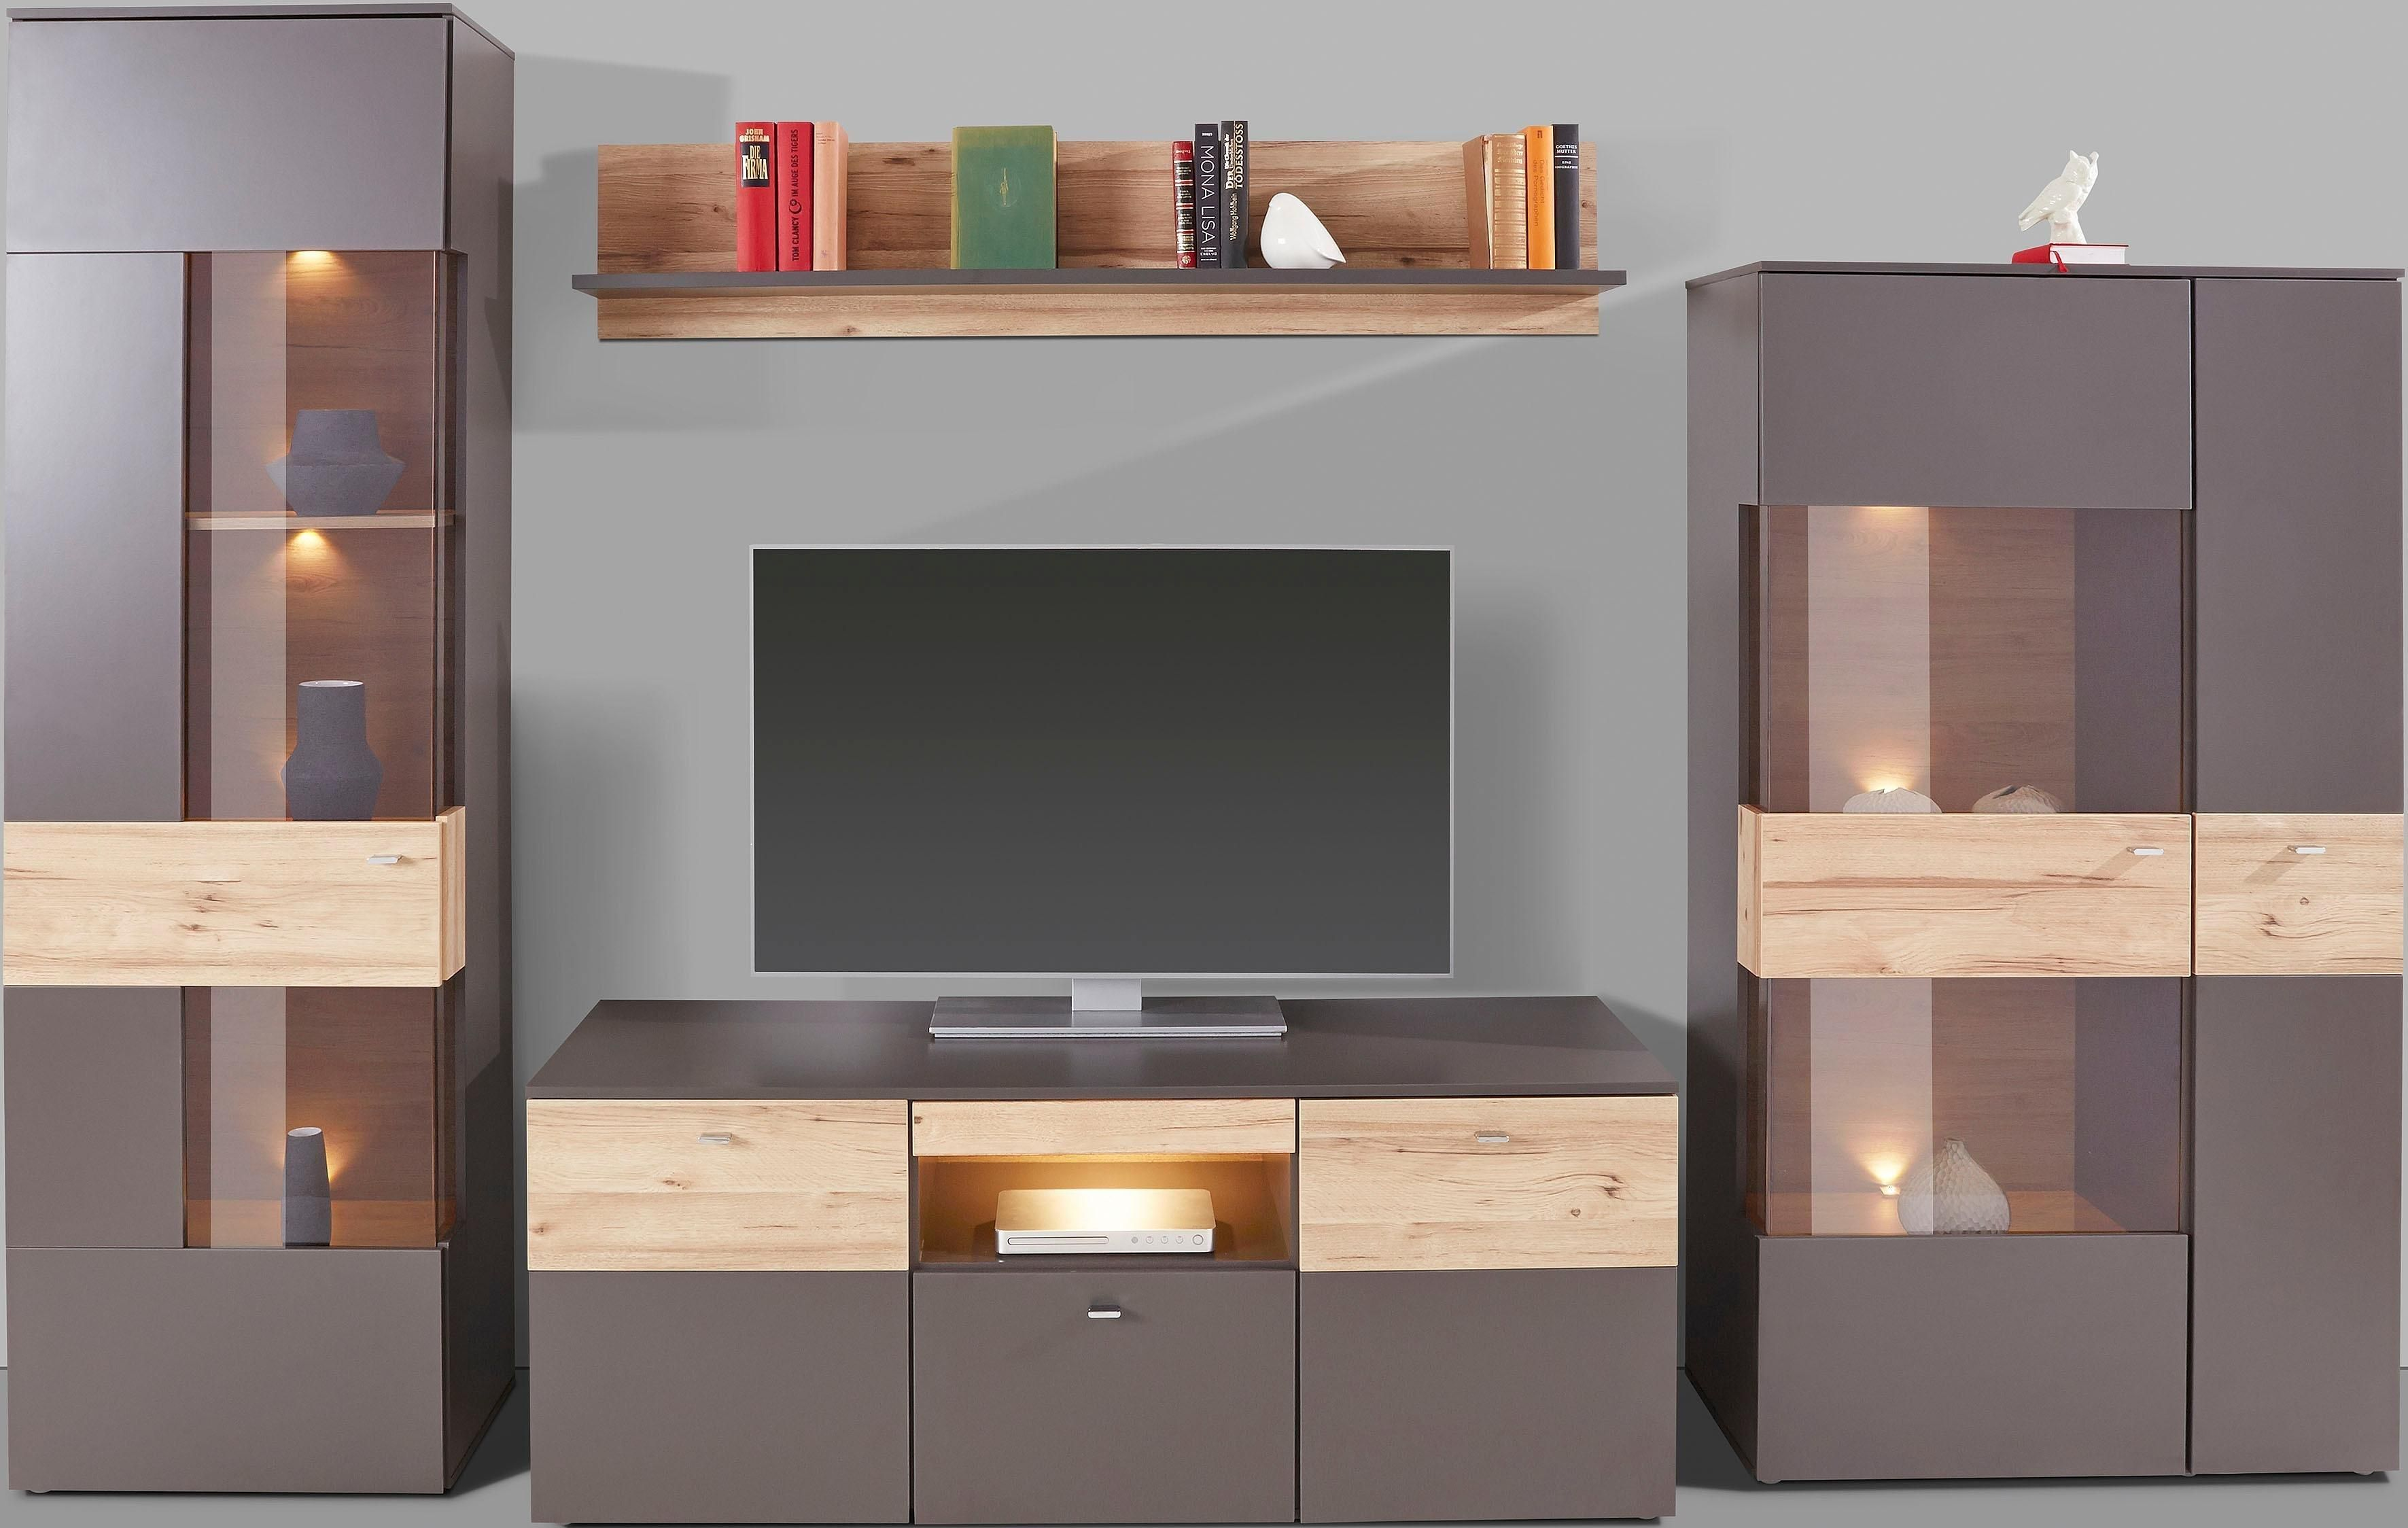 Forte Wohnwand Auf Rechnung Kaufen With Images Home Tv Wall Unit Bedroom Decor